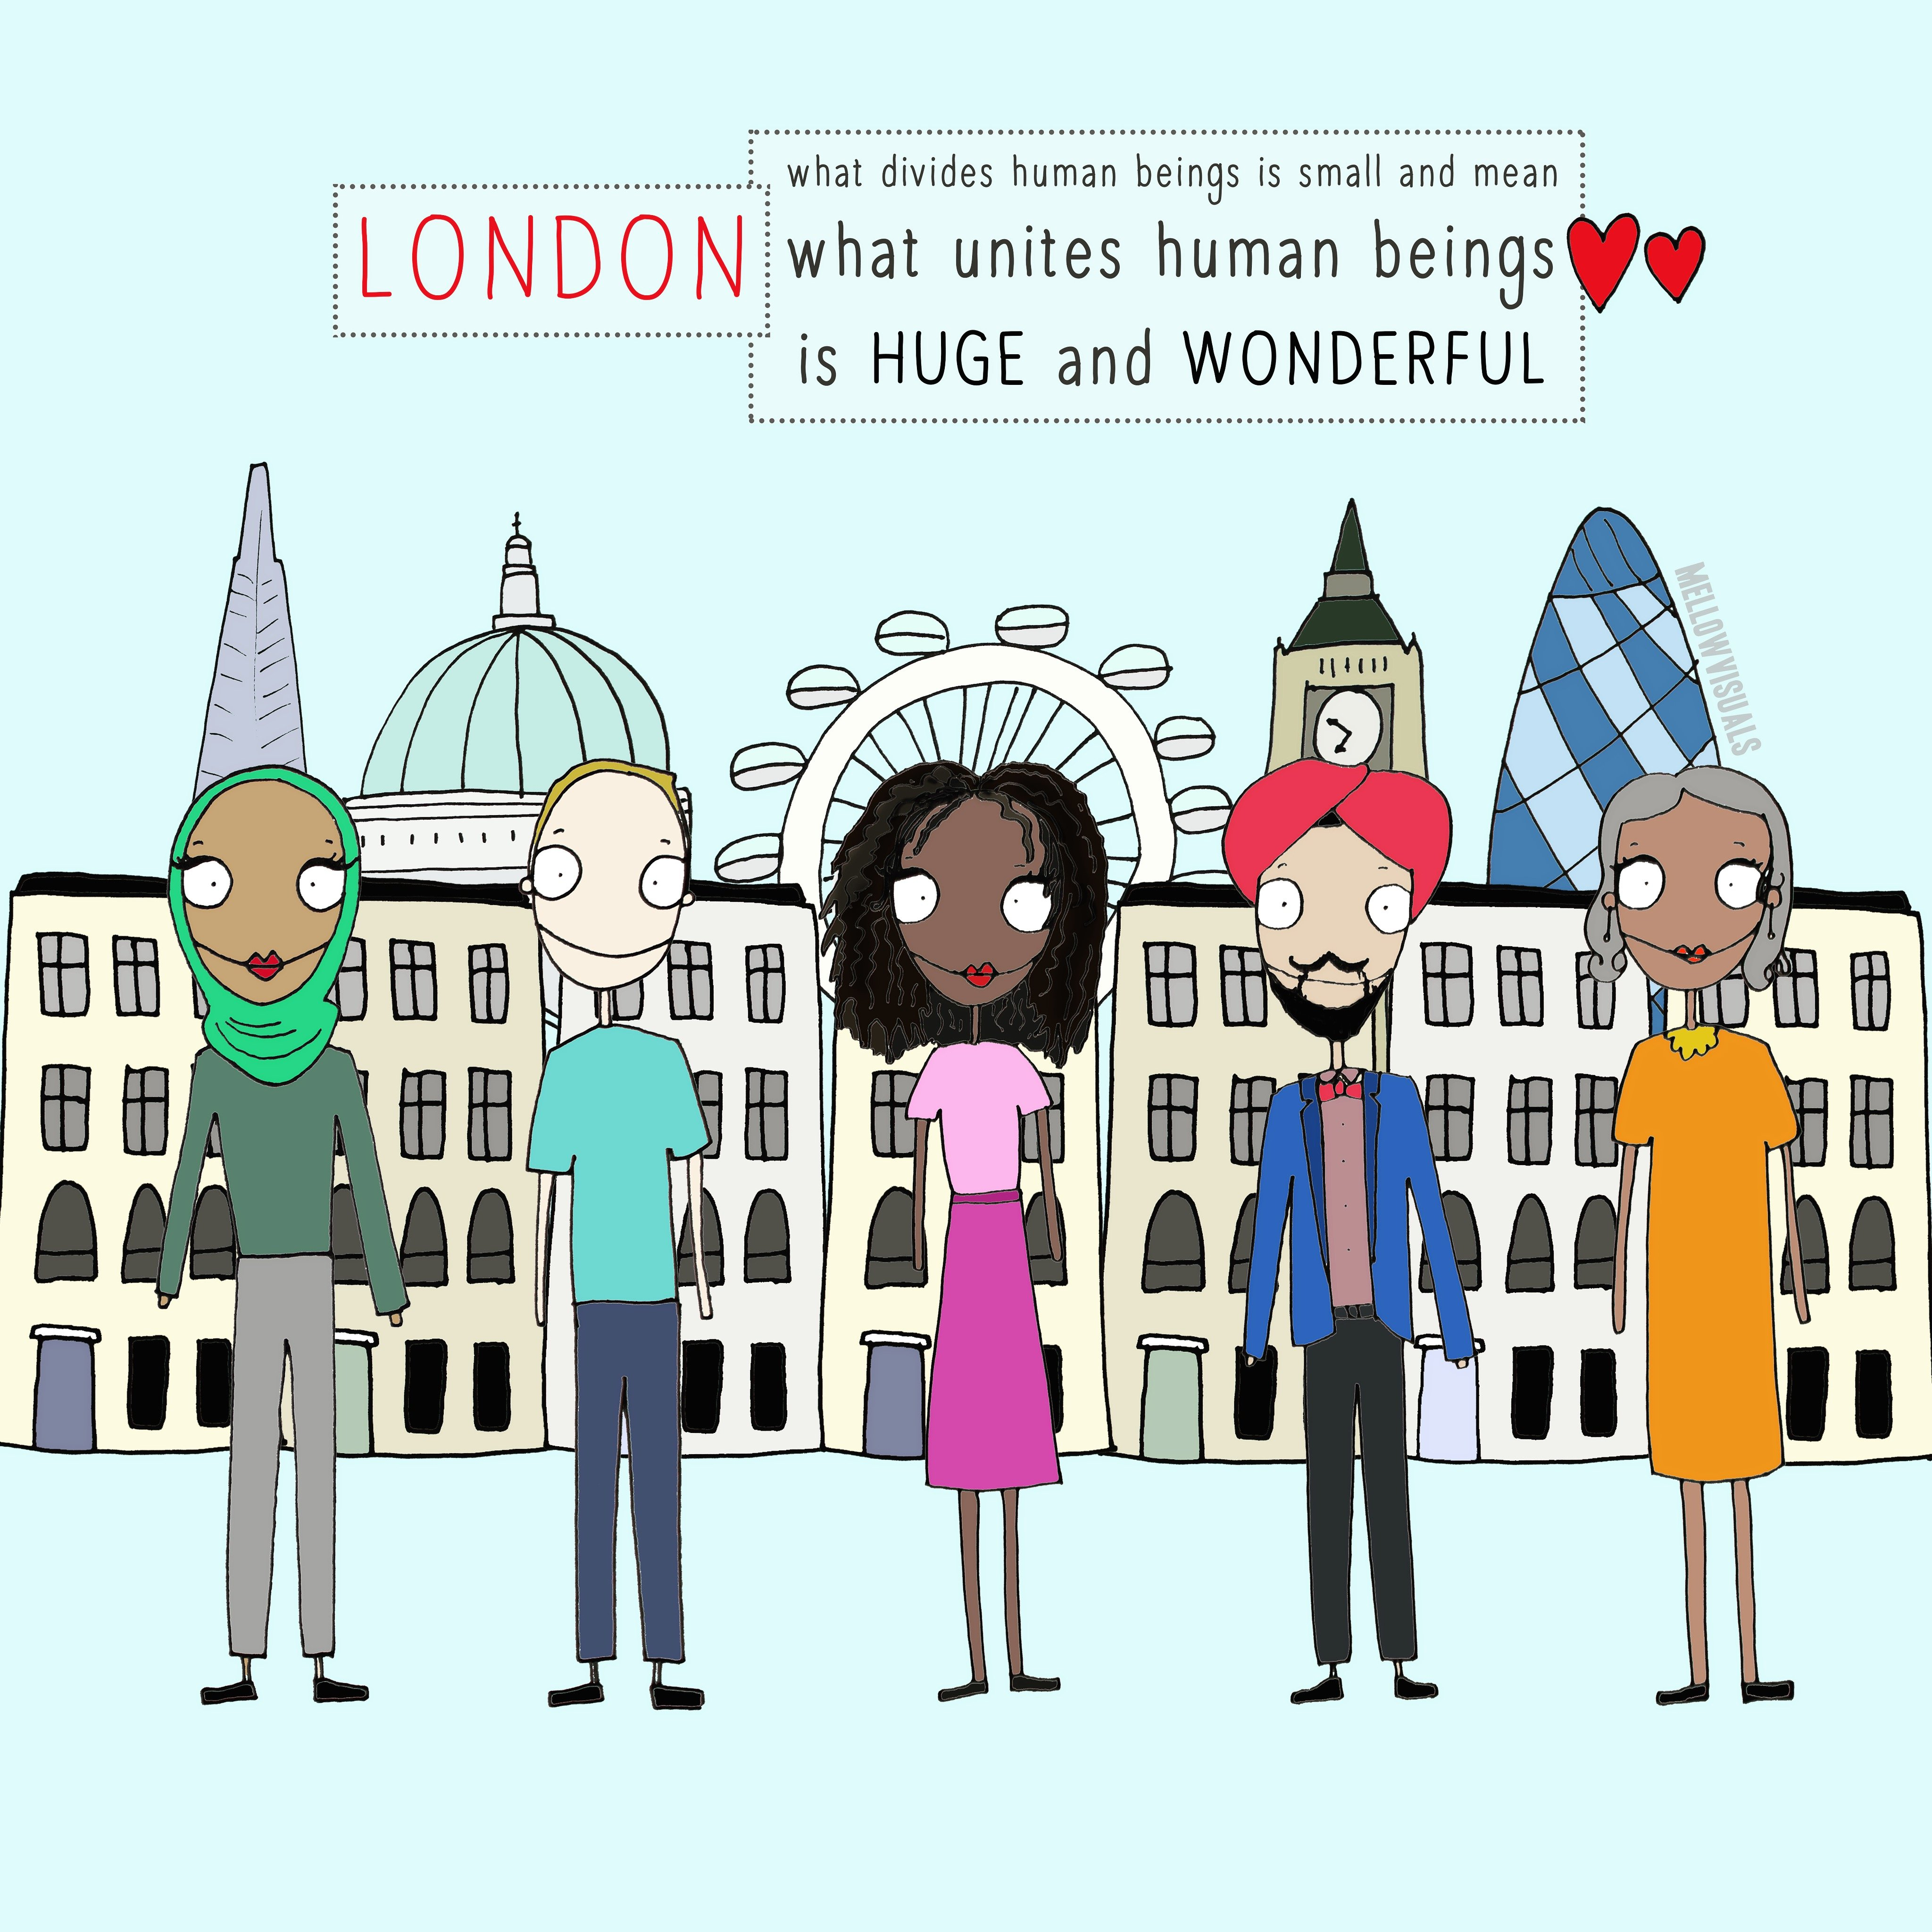 Image sent to us by Mellow Visuals showing people of different faiths standing in London